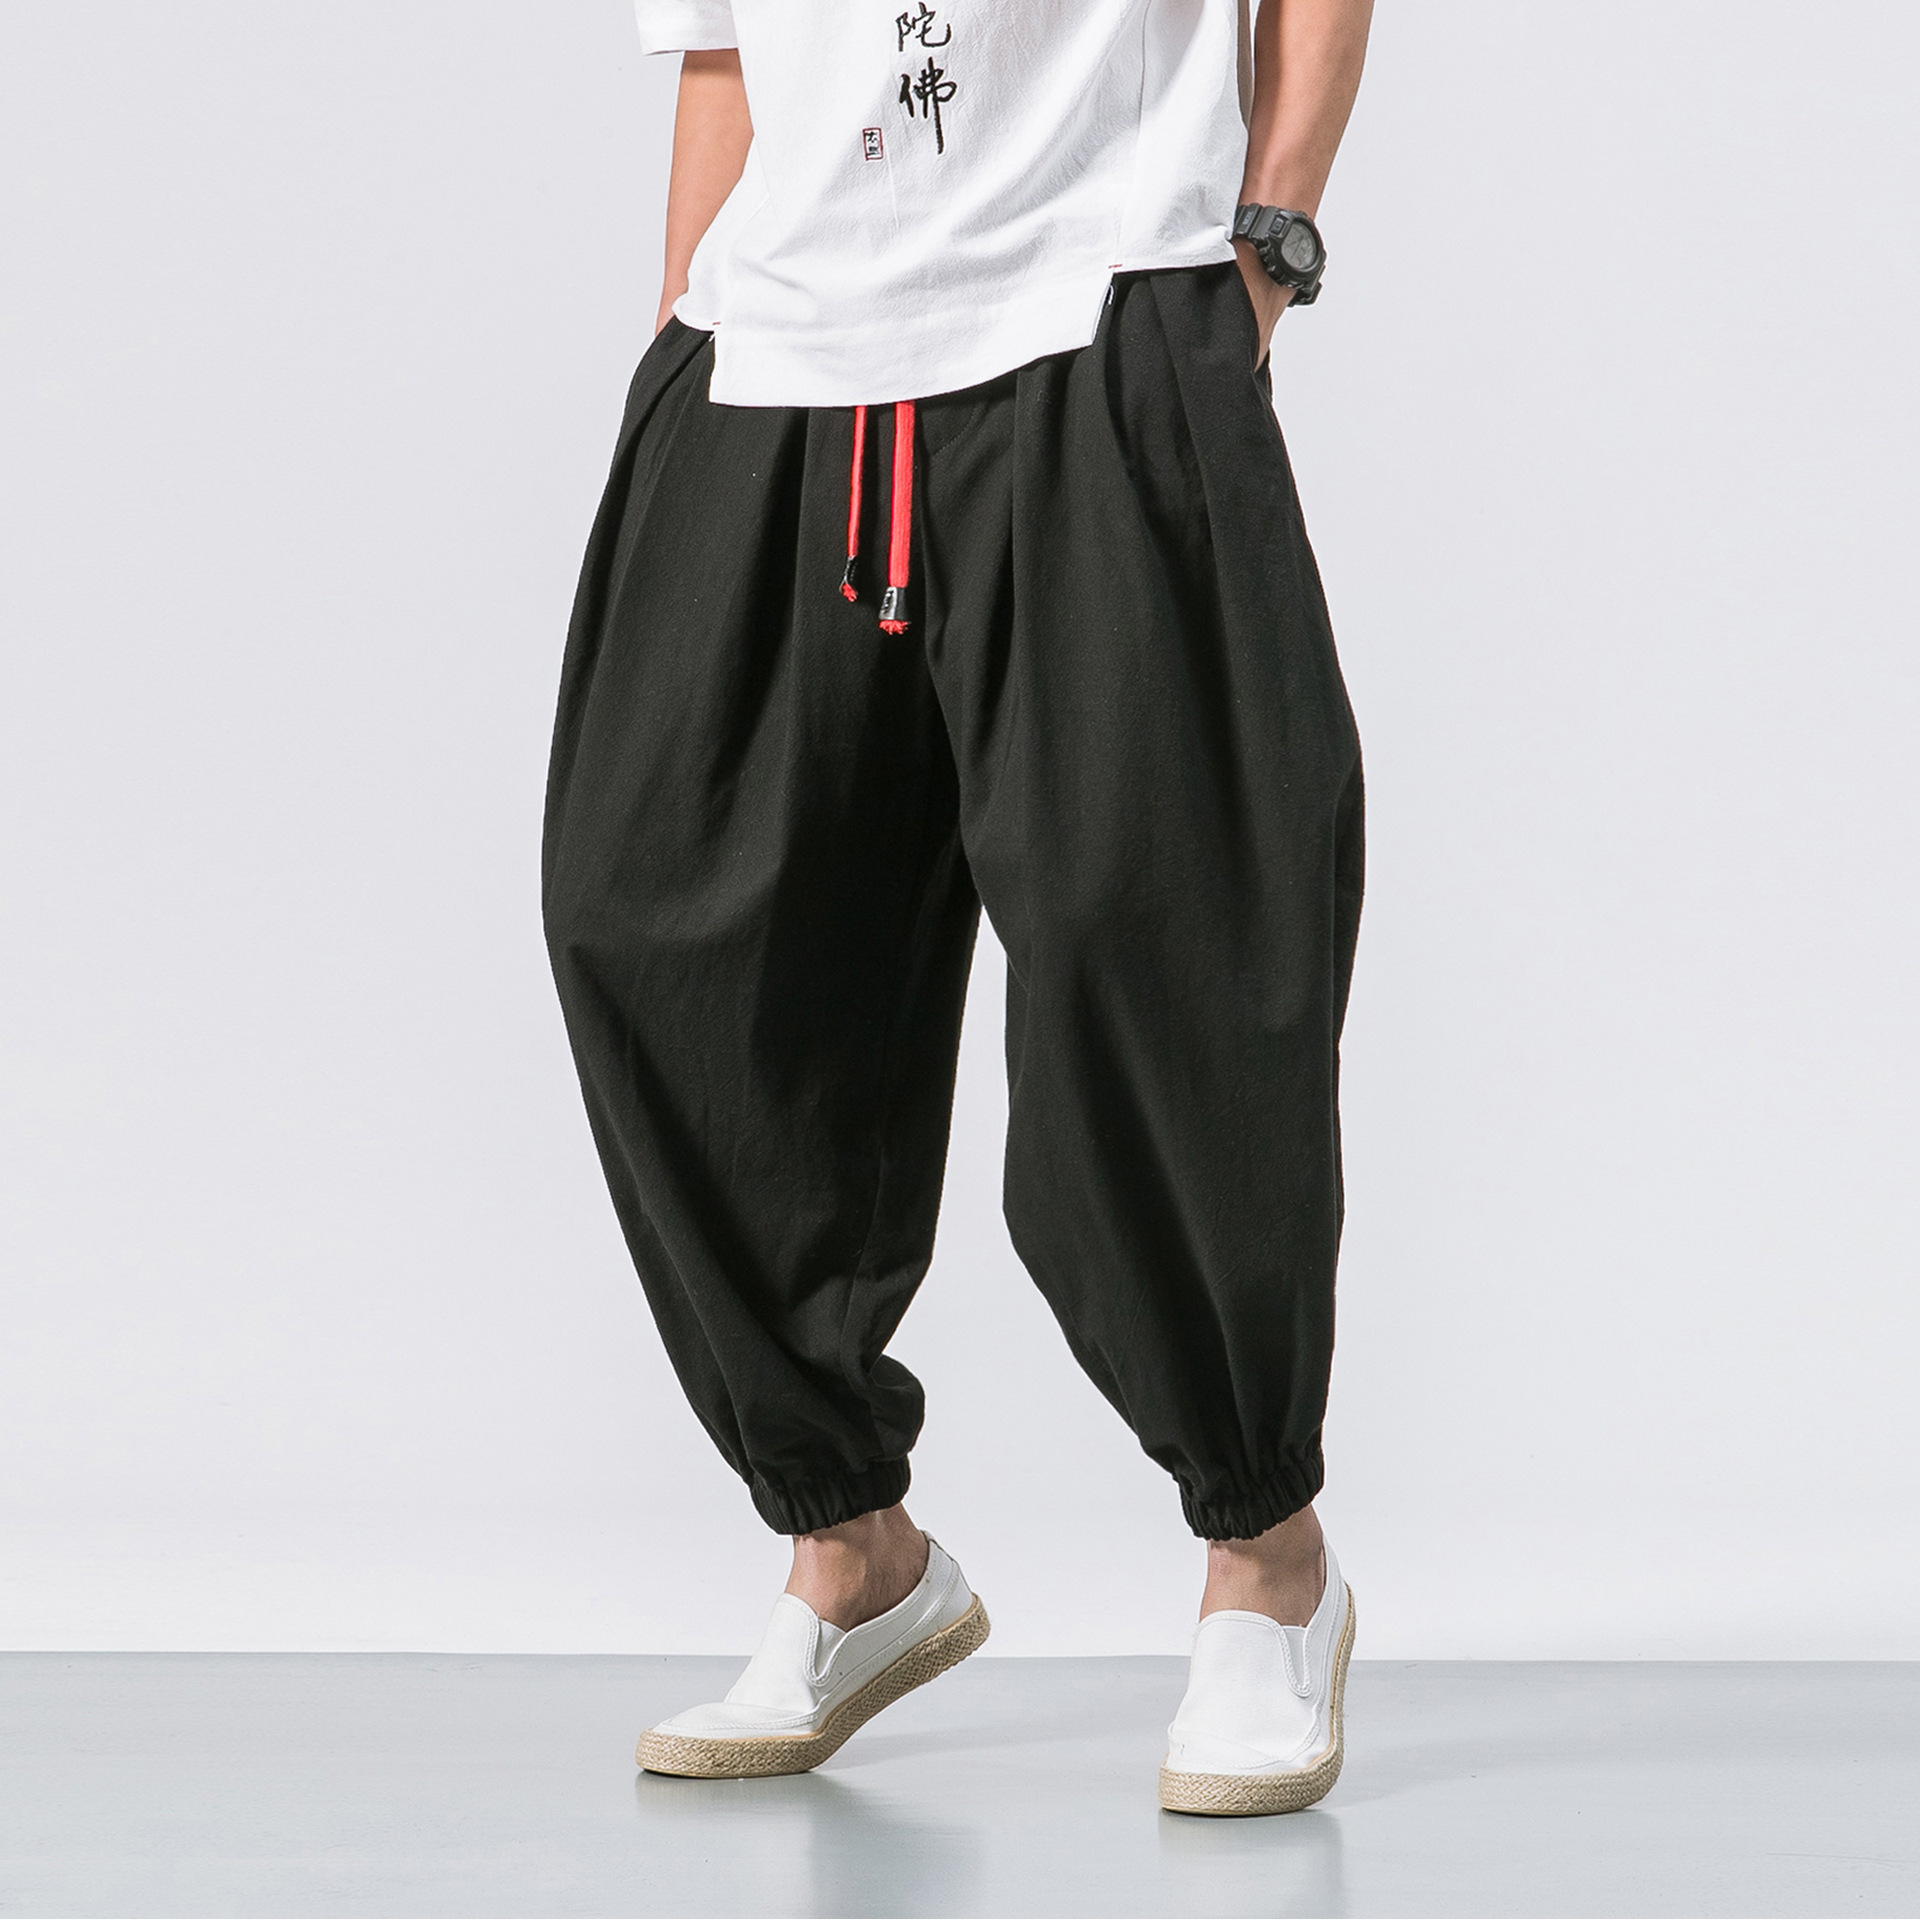 Summer Wear Loose Thin Back Rise Width Trousers Men's Japanese-style Solid Color Trousers Cotton Linen Harem Loose And Plus-size